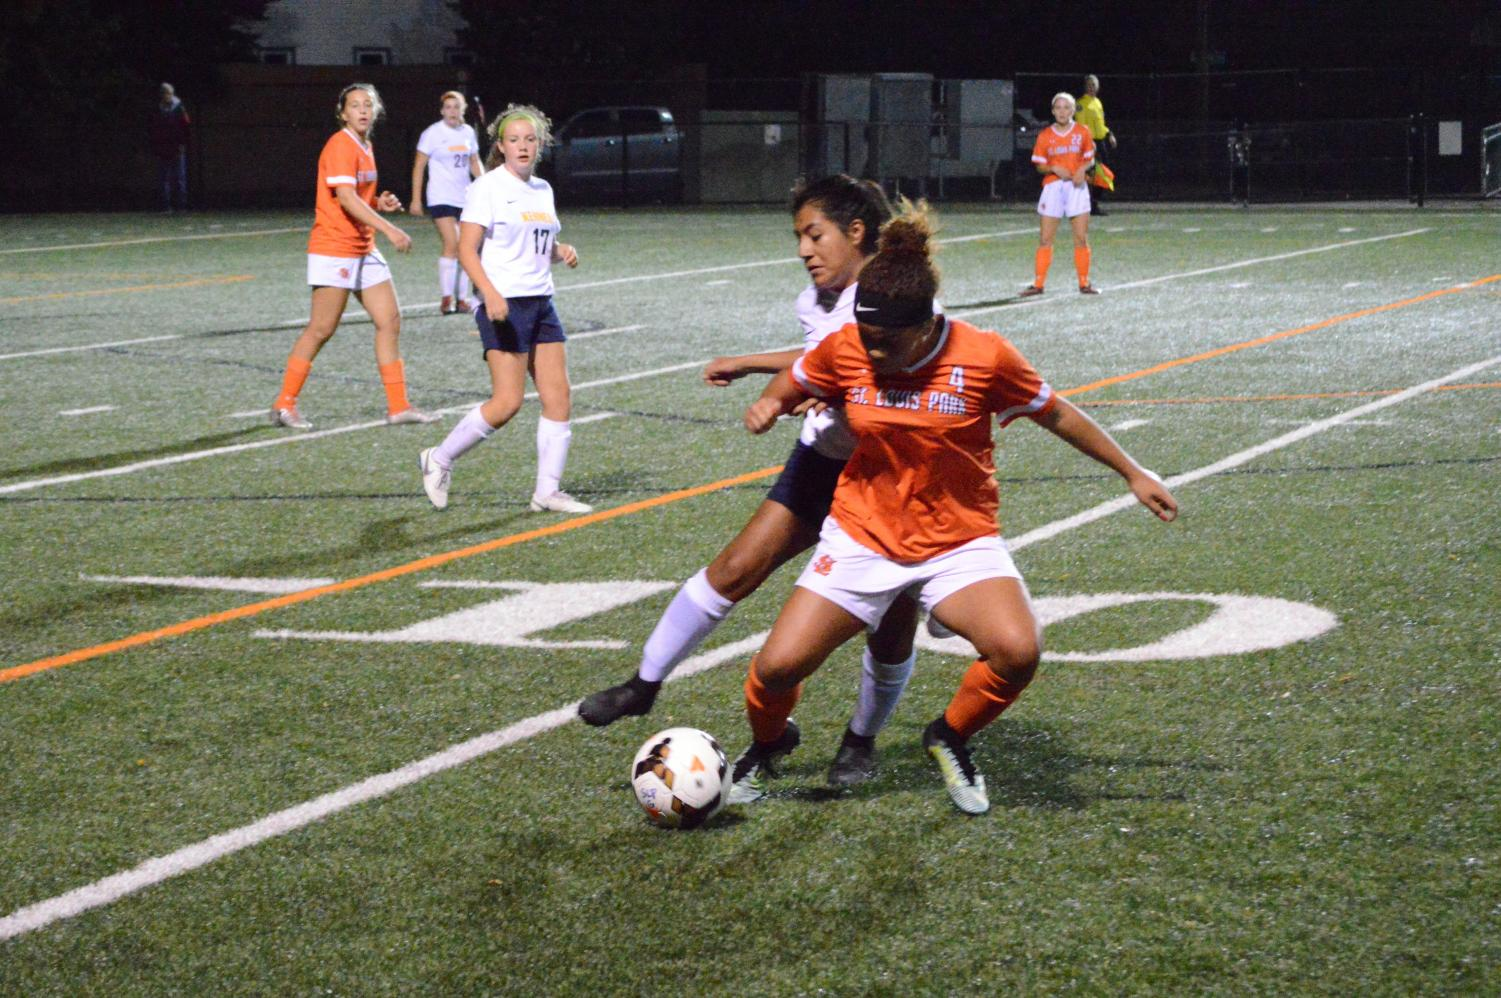 Junior+Aliviah+McClinton+fights+for+ball+possession+towards+the+end+of+the+second+half+of+the+game+Sept.+17.+McClinton+scored+one+of+two+goals+during+Park%27s+game+against+Bloomington+Kennedy.